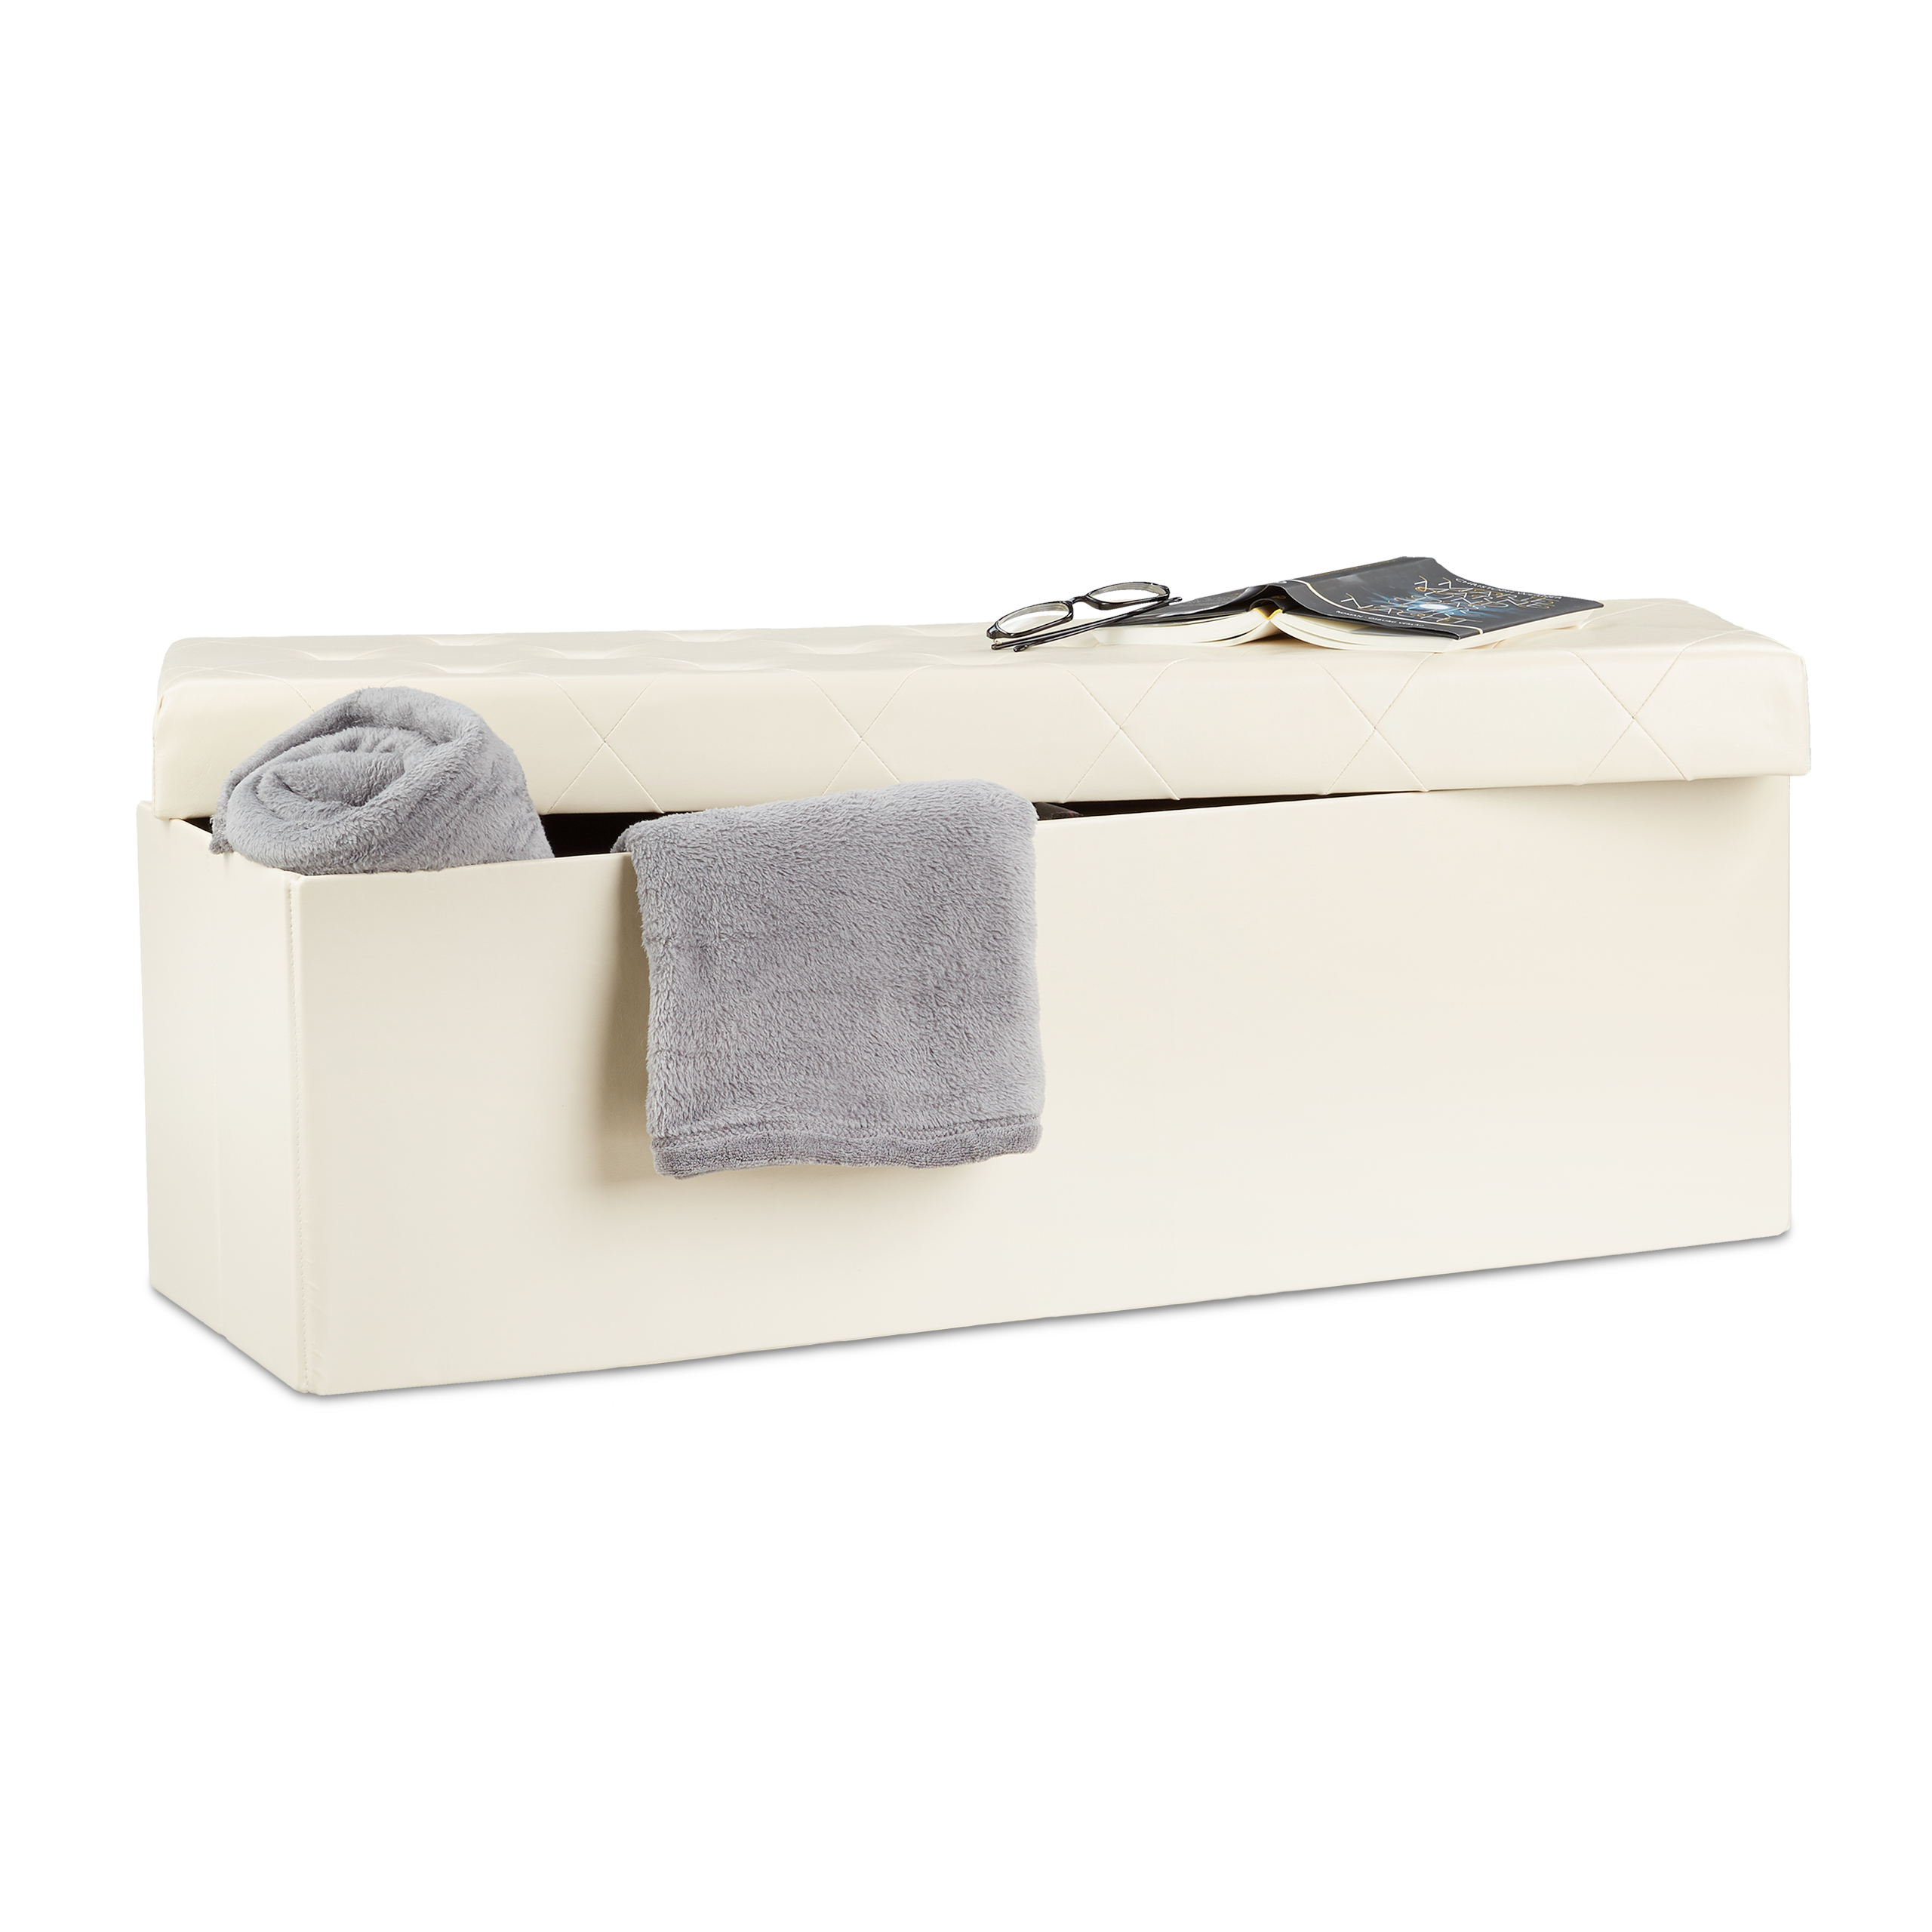 Folding-Faux-Leather-Storage-Ottoman-Bench-Padded-Seat-Footstool-Living-Room